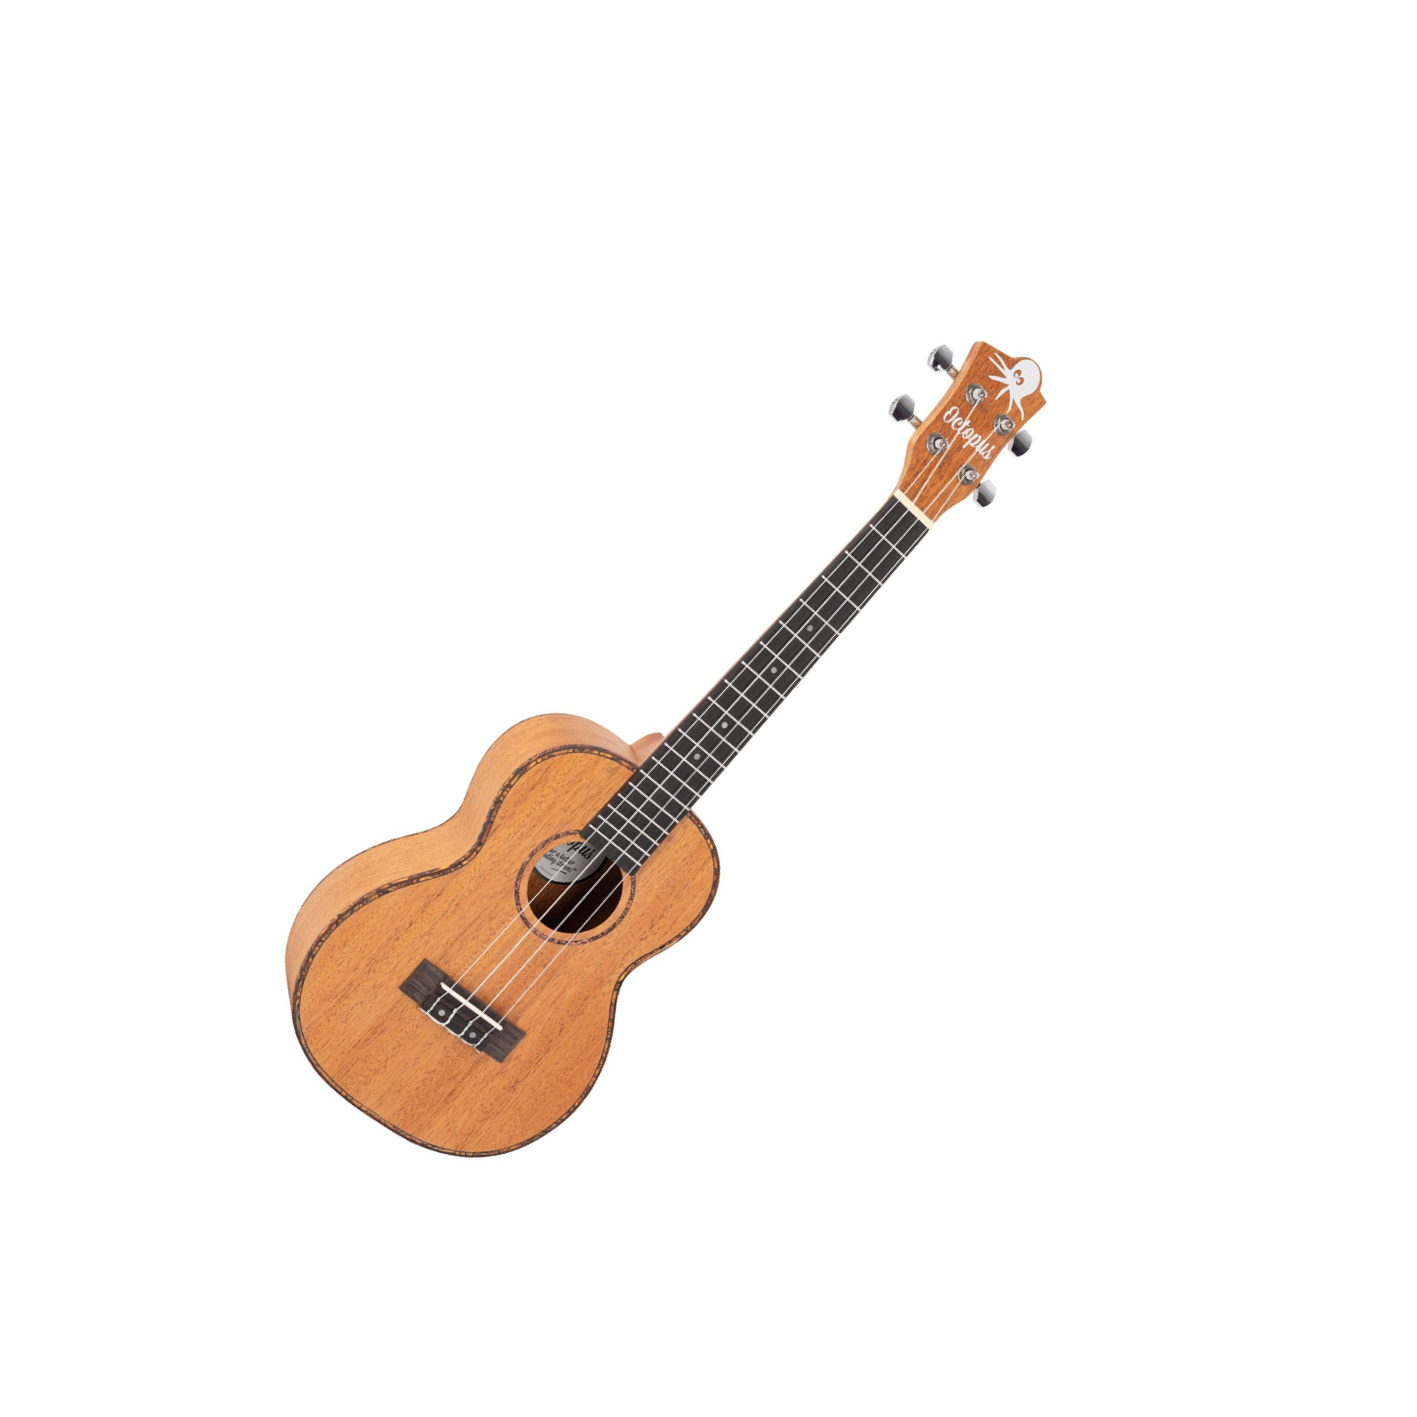 Octopus UK225T Mahogany Tenor Ukulele